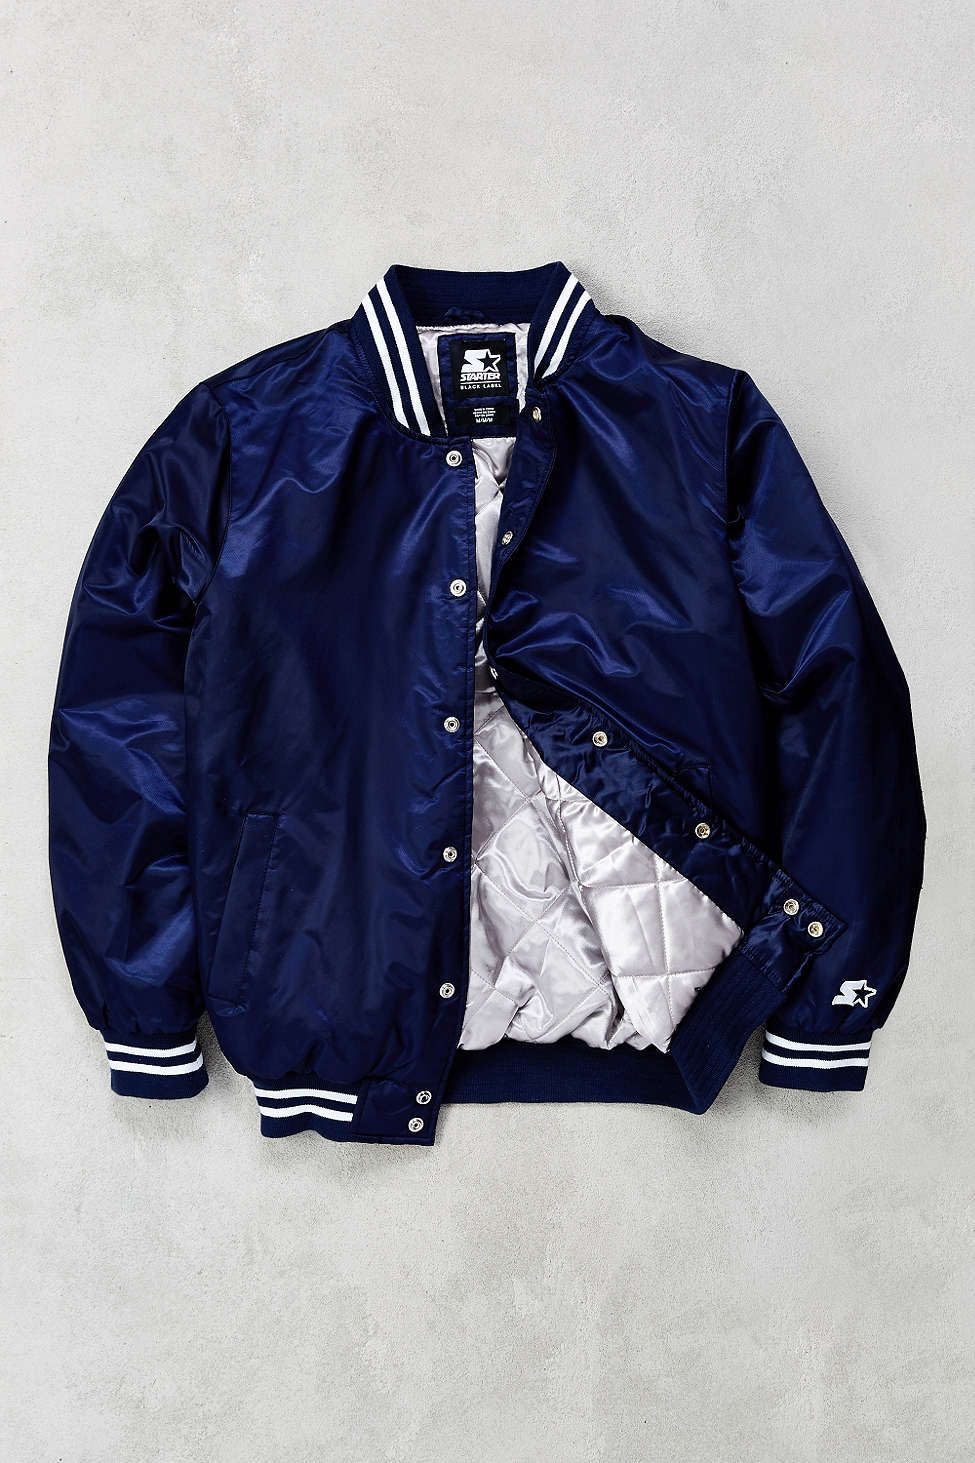 The Best Bomber Jackets to Buy Because It's Unseasonably Warm | StyleCaster